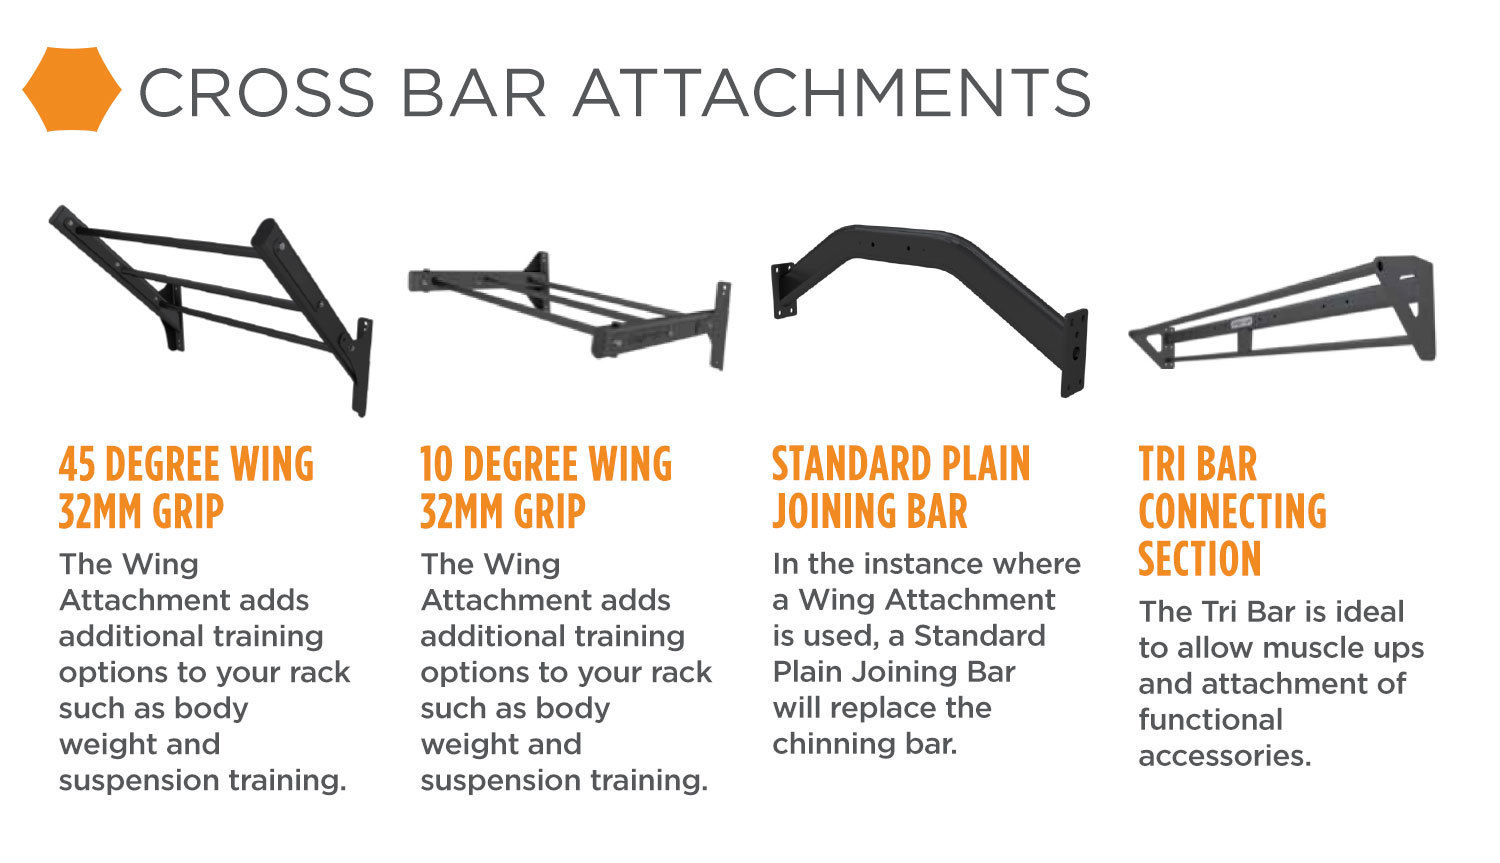 sierra cross bar attachments